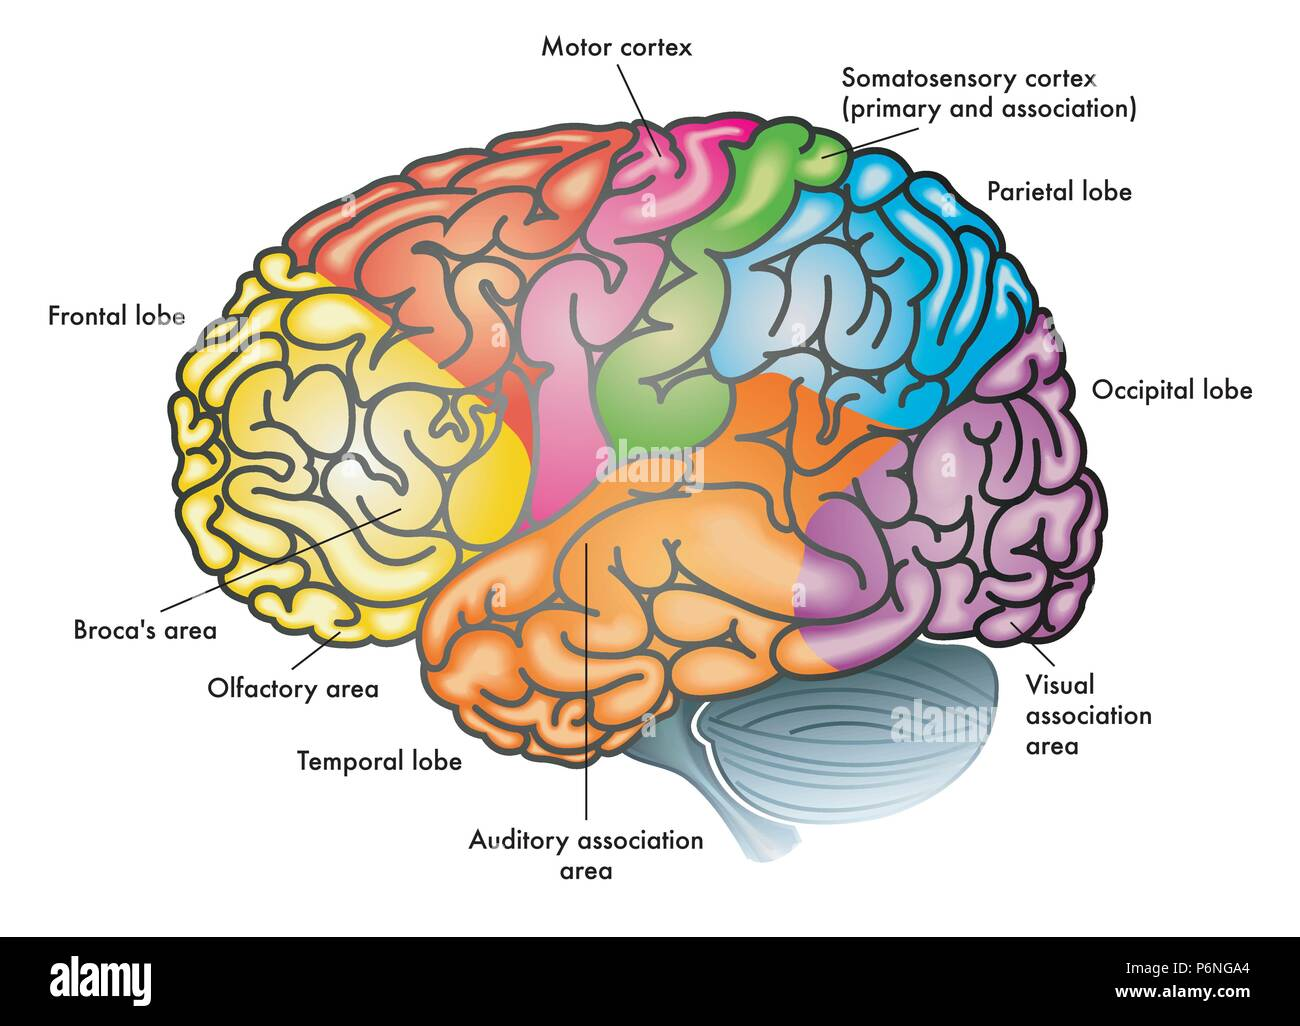 vector medical colorful illustration of a human brain with different functional areas highlighted with different colors - Stock Image